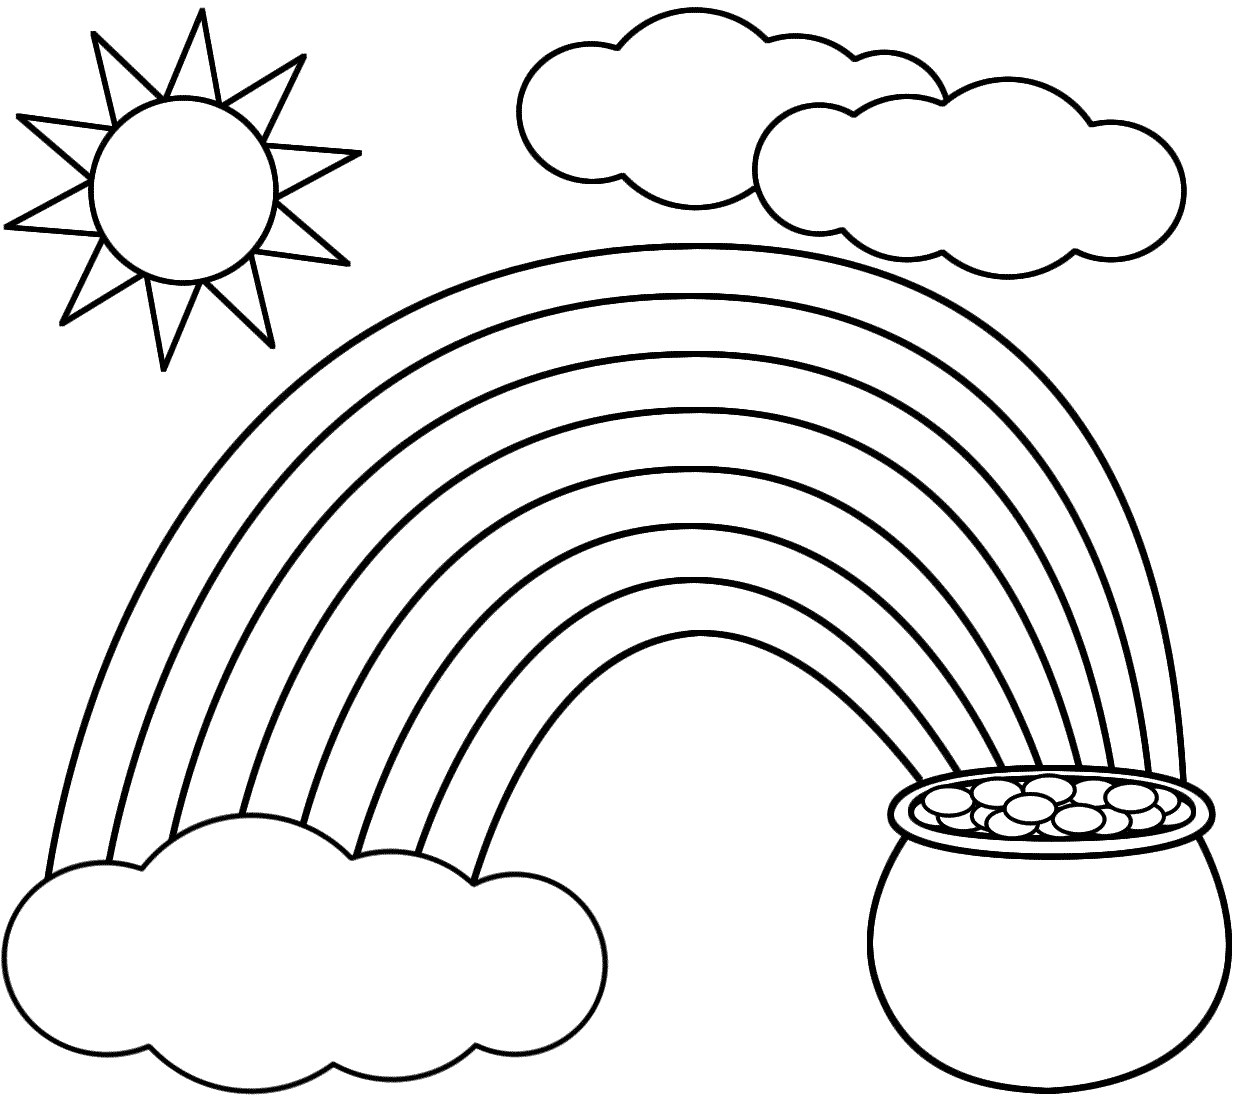 Rainbow pot of gold sun and clouds coloring pages